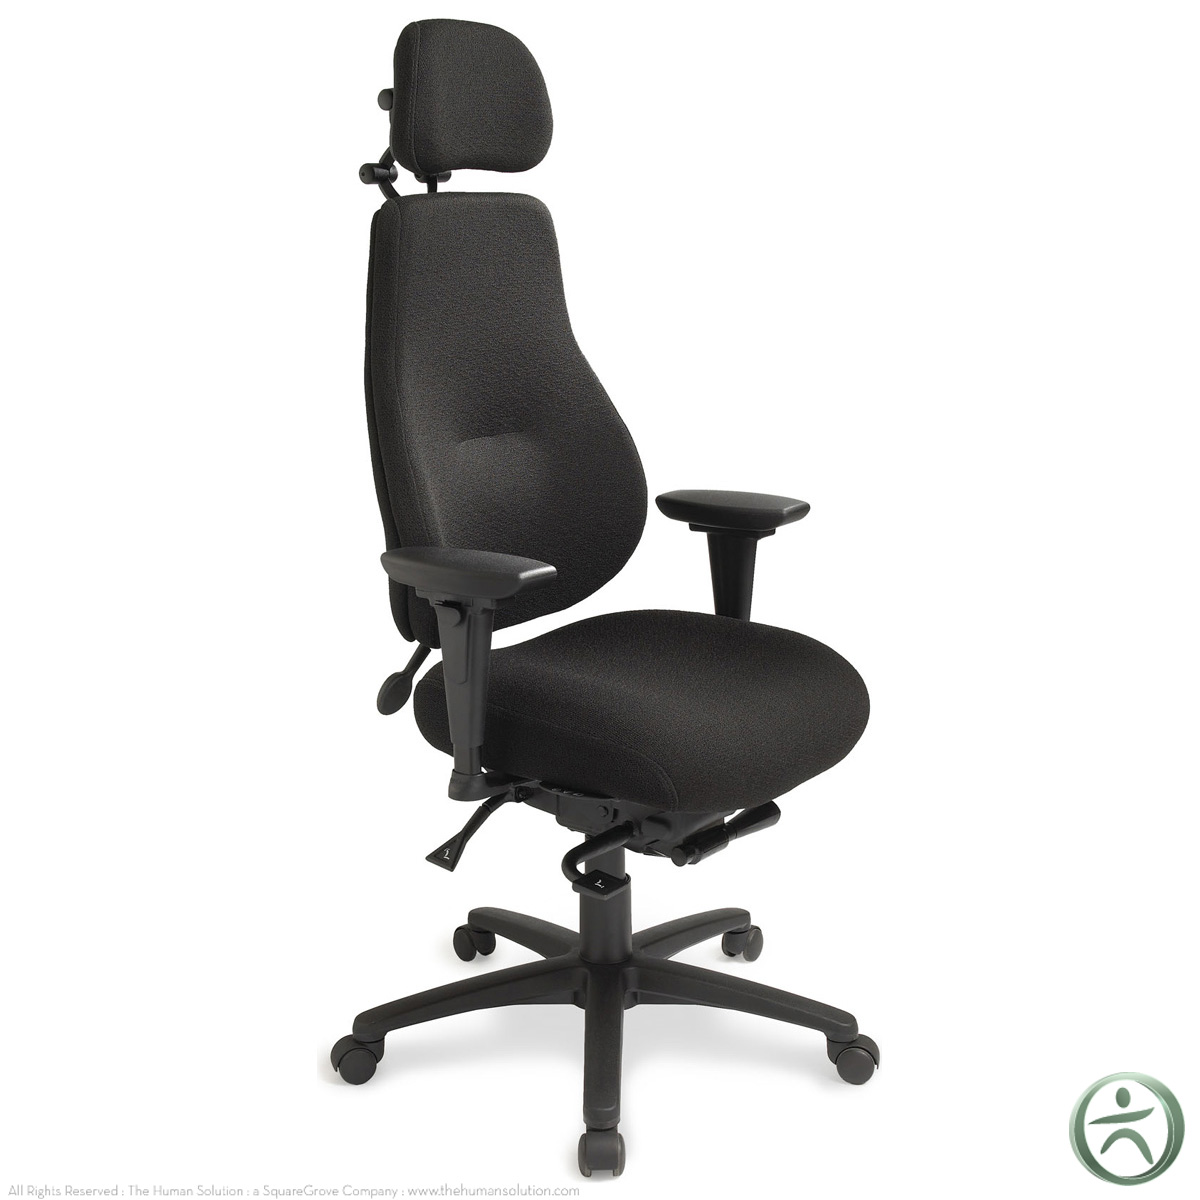 ergo chairs for office walking cane chair seats shop ergocentric mycentric ergonomic